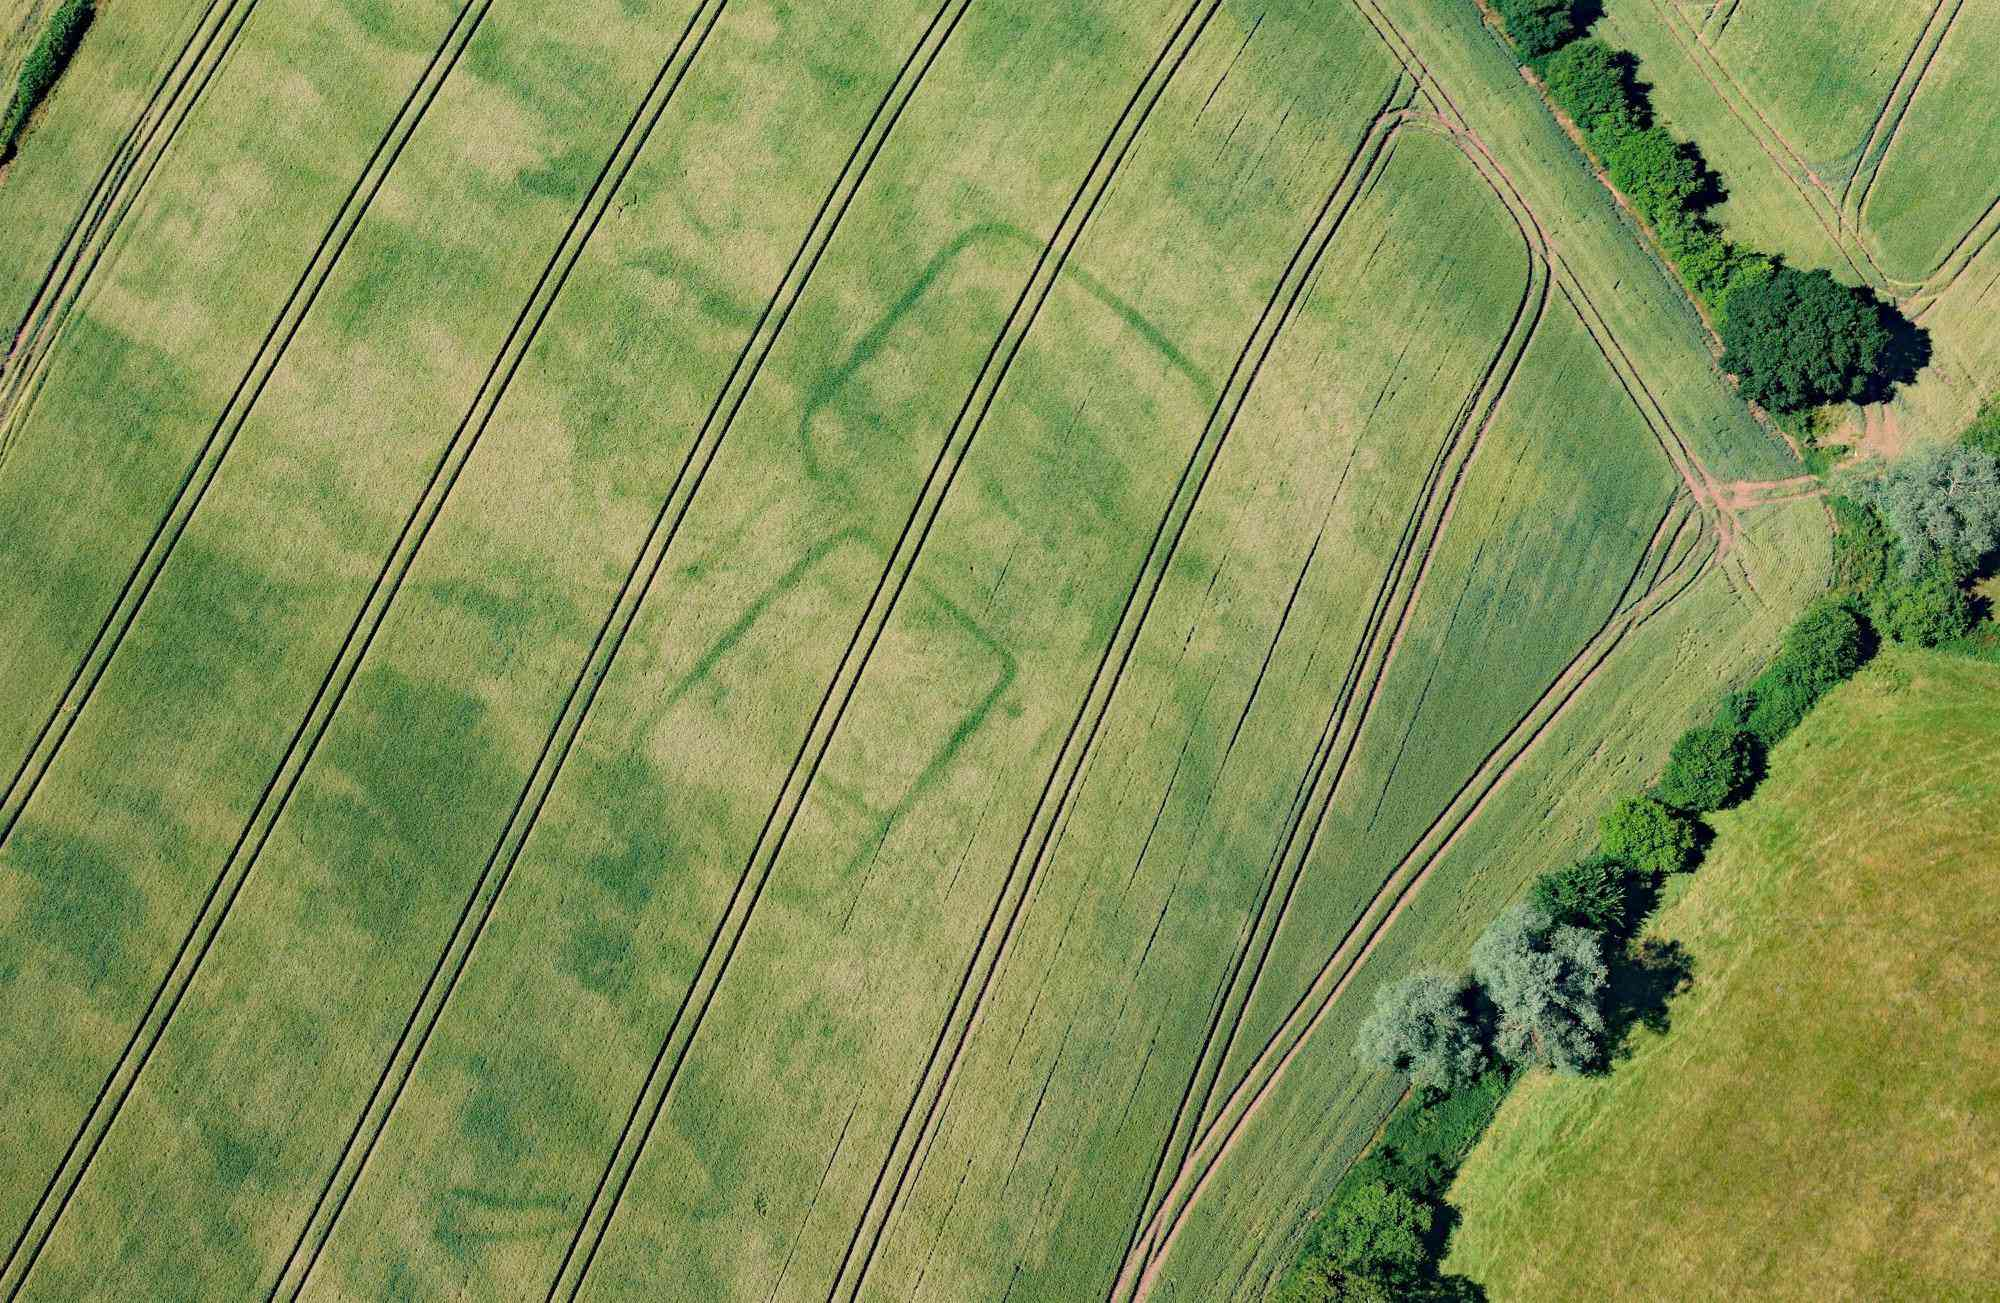 Newly discovered cropmarks of a prehistoric or Roman farm near Langstone, Newport, South Wales.